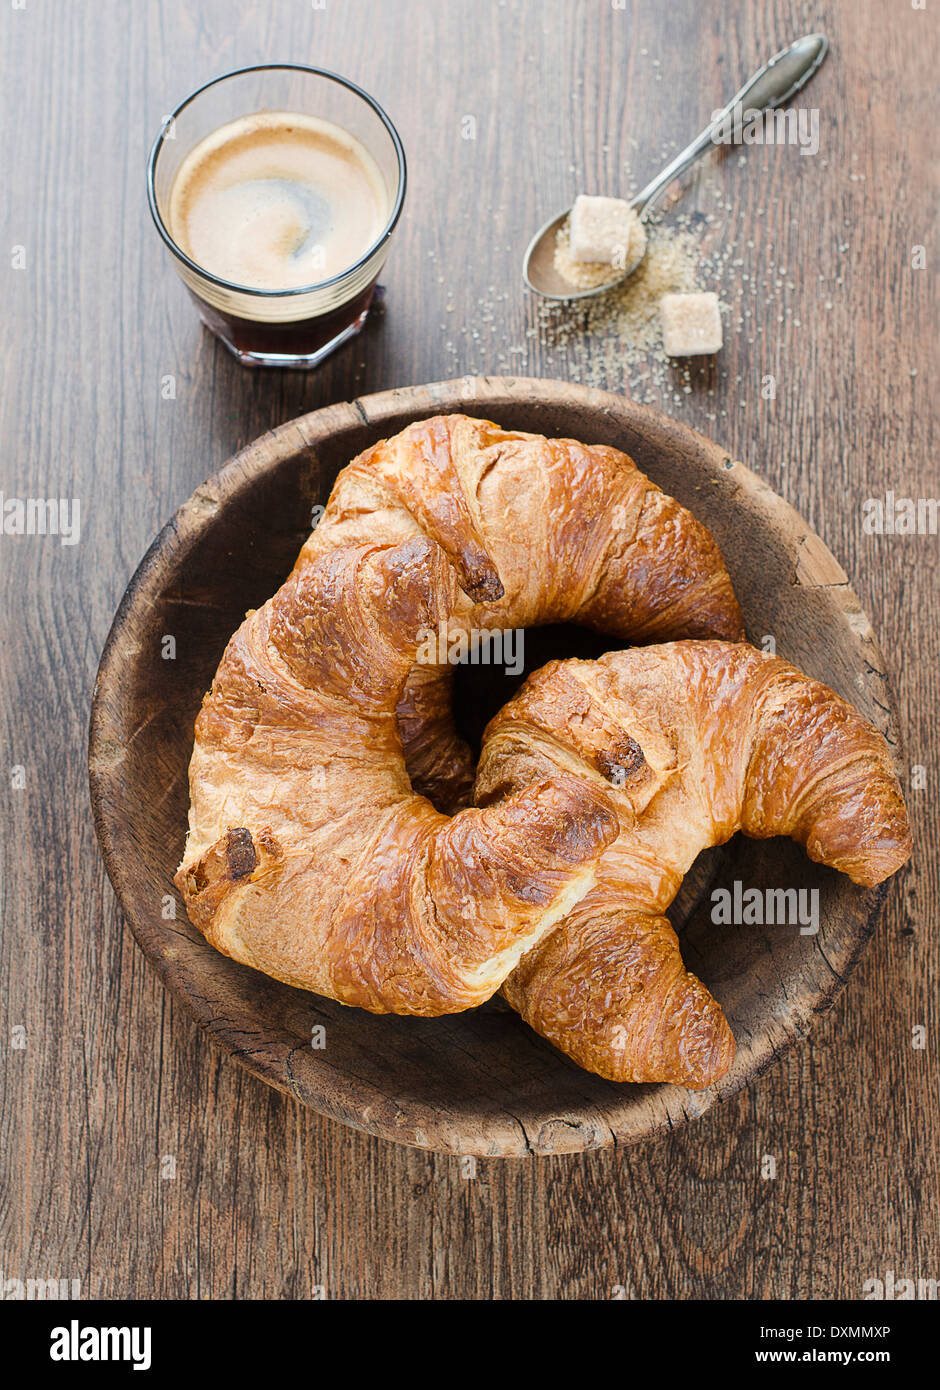 Breakfast with croissants and coffee. - Stock Image